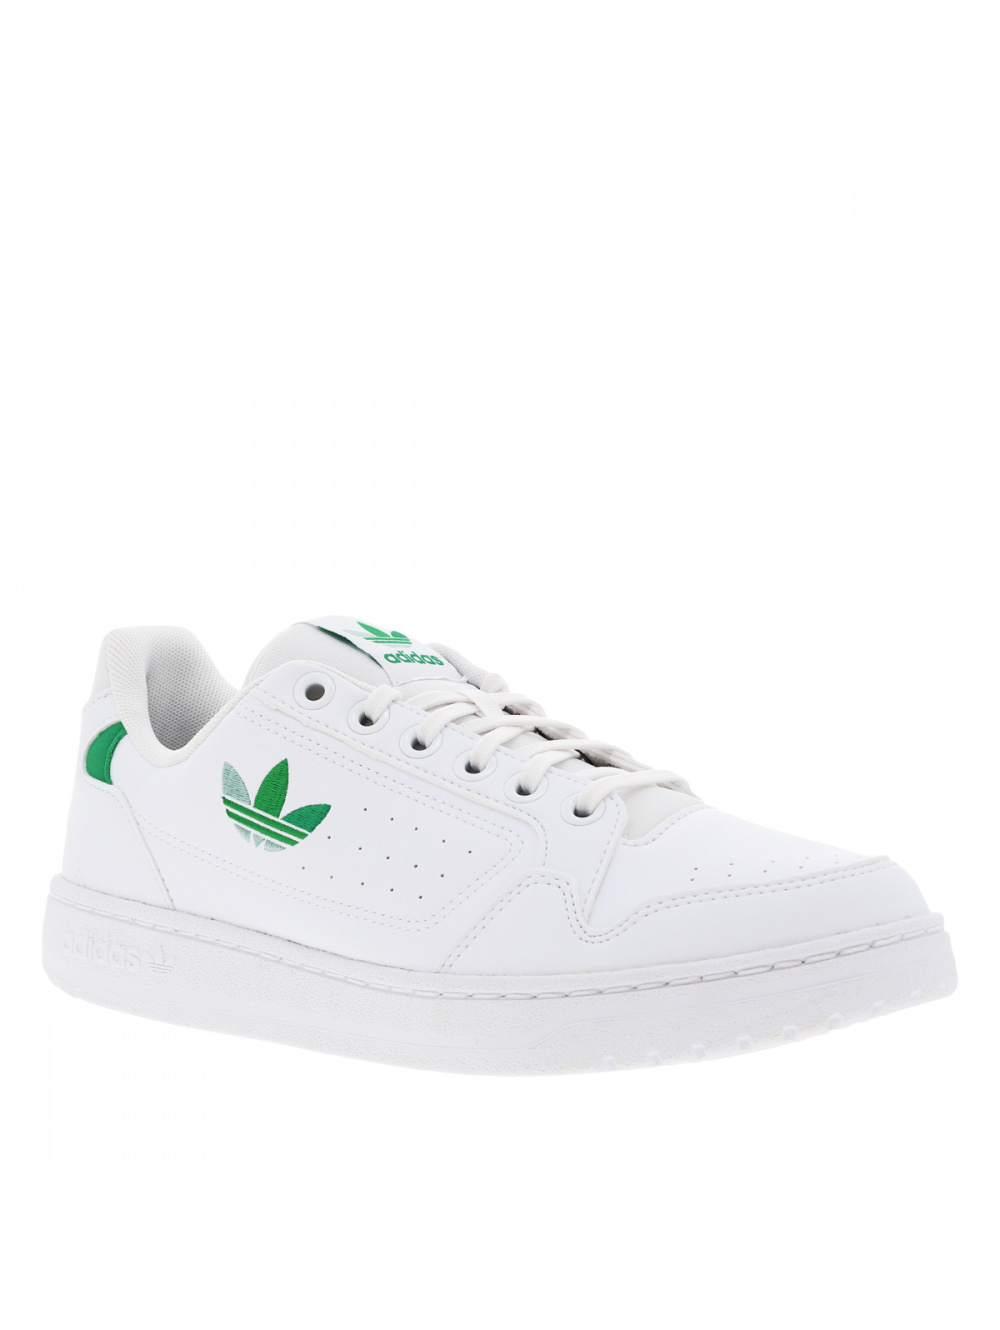 Baskets basses blanches et vertes pour homme NY 90 Adidas,adidas ...